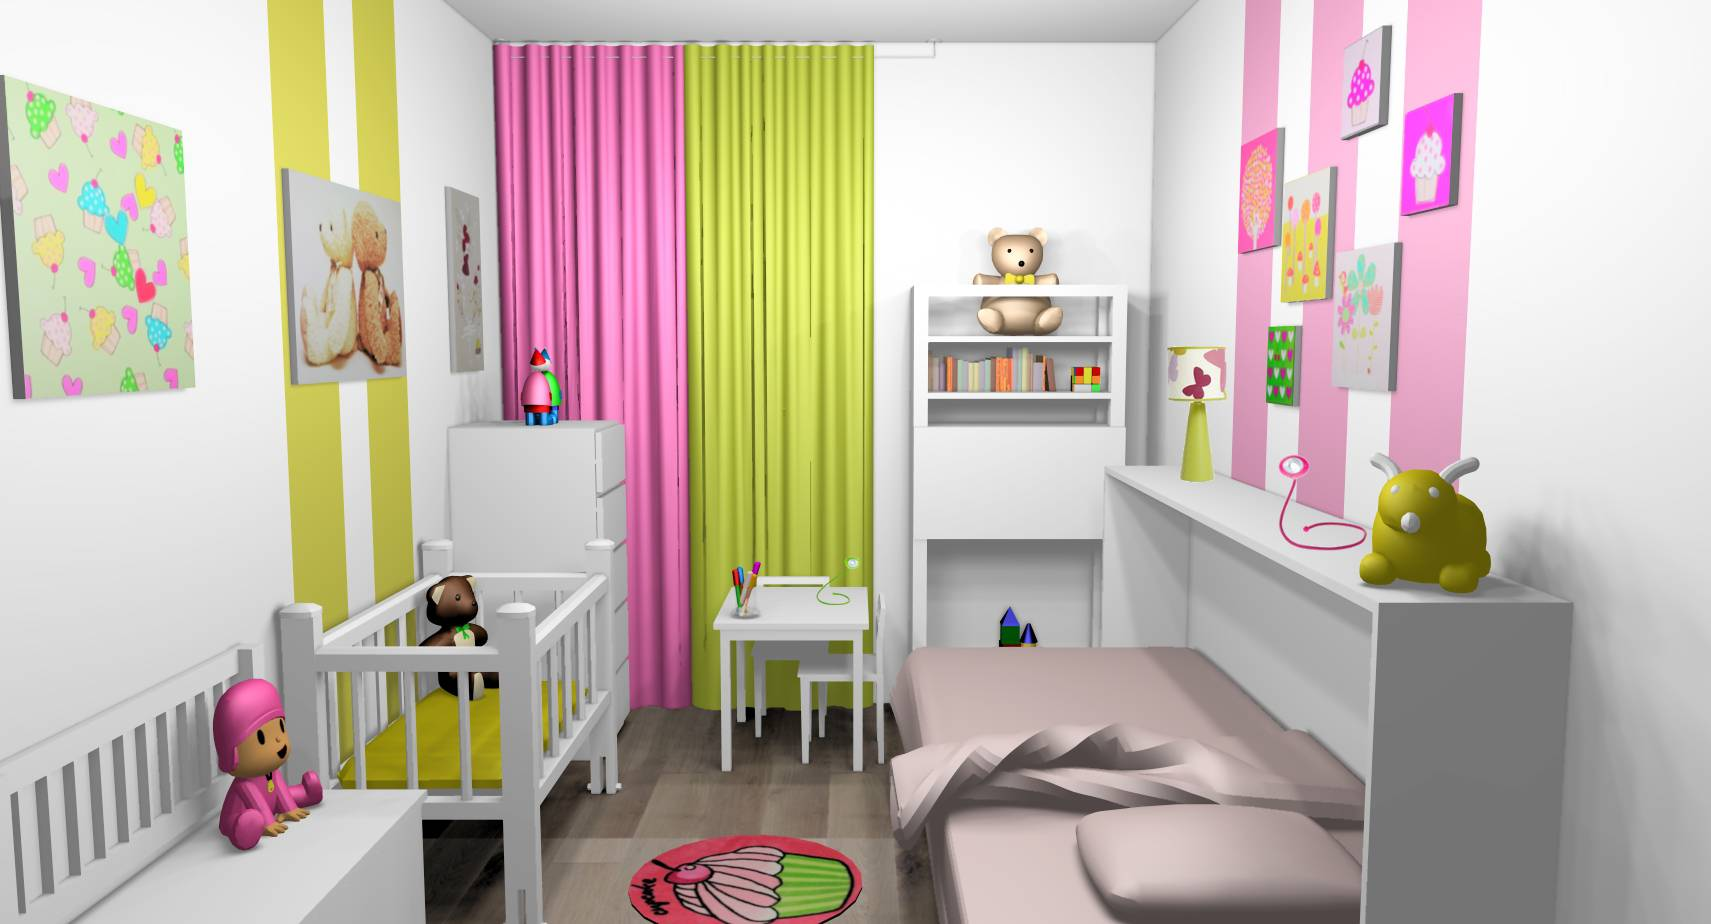 d coration d 39 int rieur d 39 une chambre de petite fille et. Black Bedroom Furniture Sets. Home Design Ideas